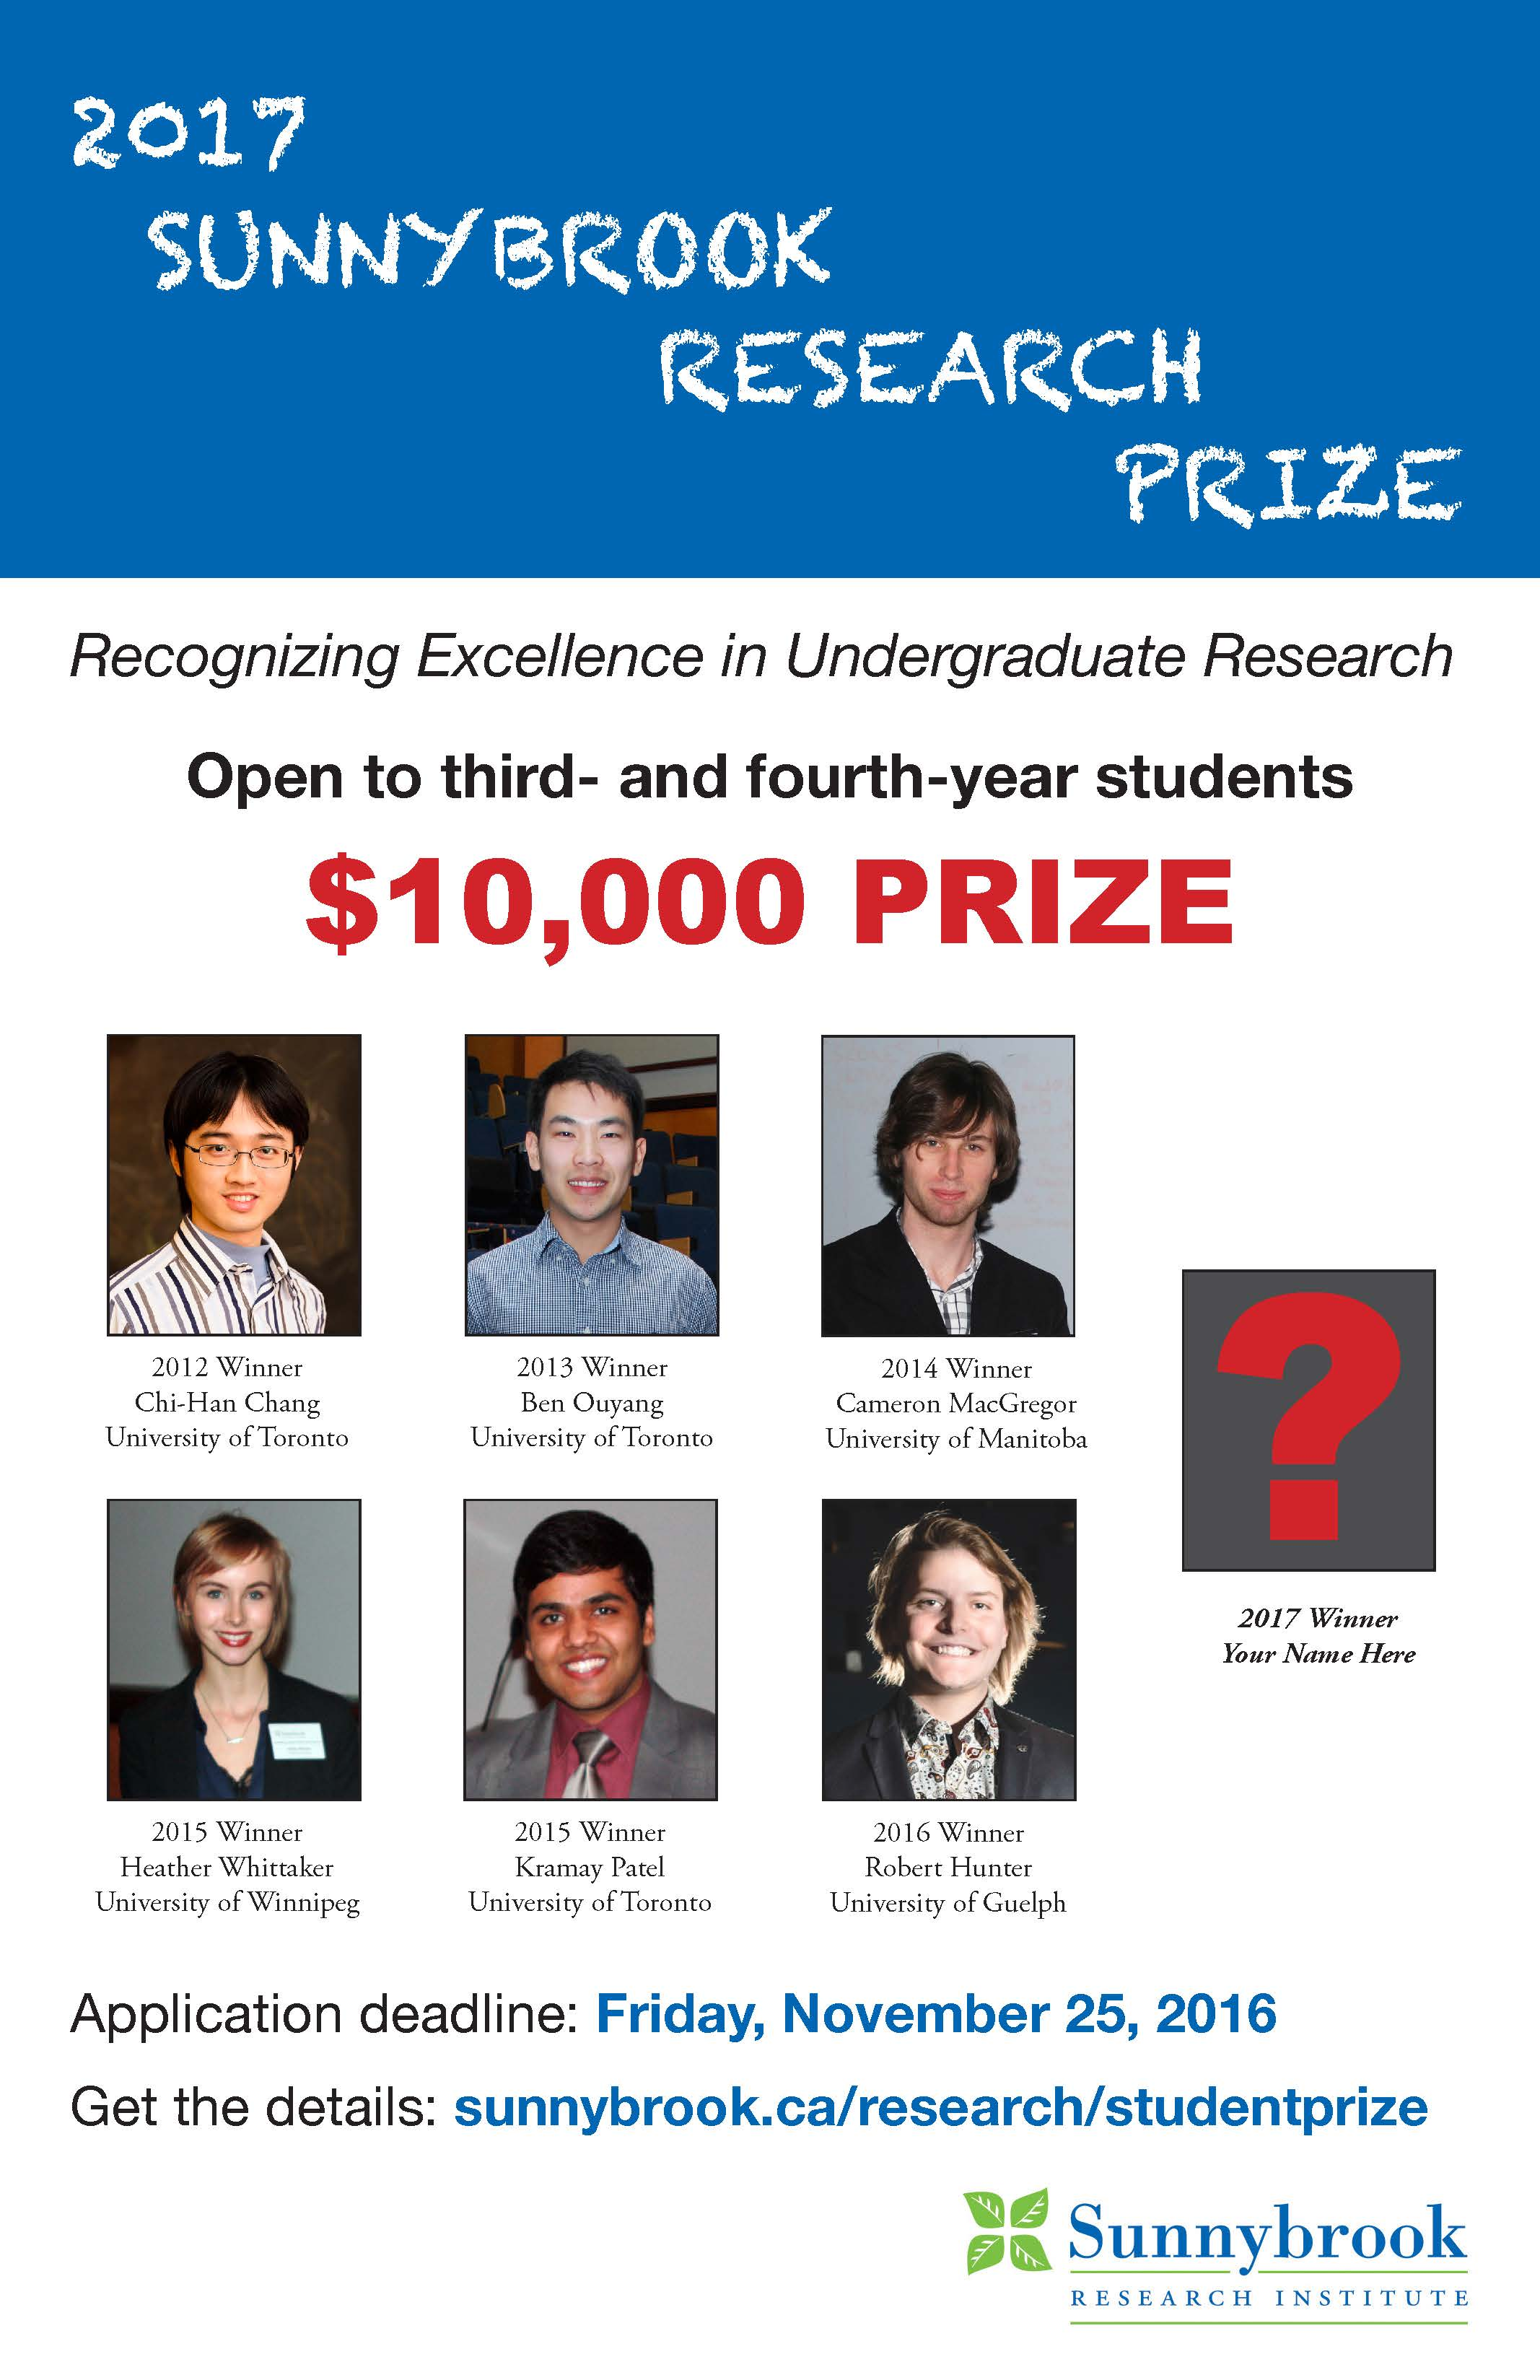 Sunnybrook Research Prize